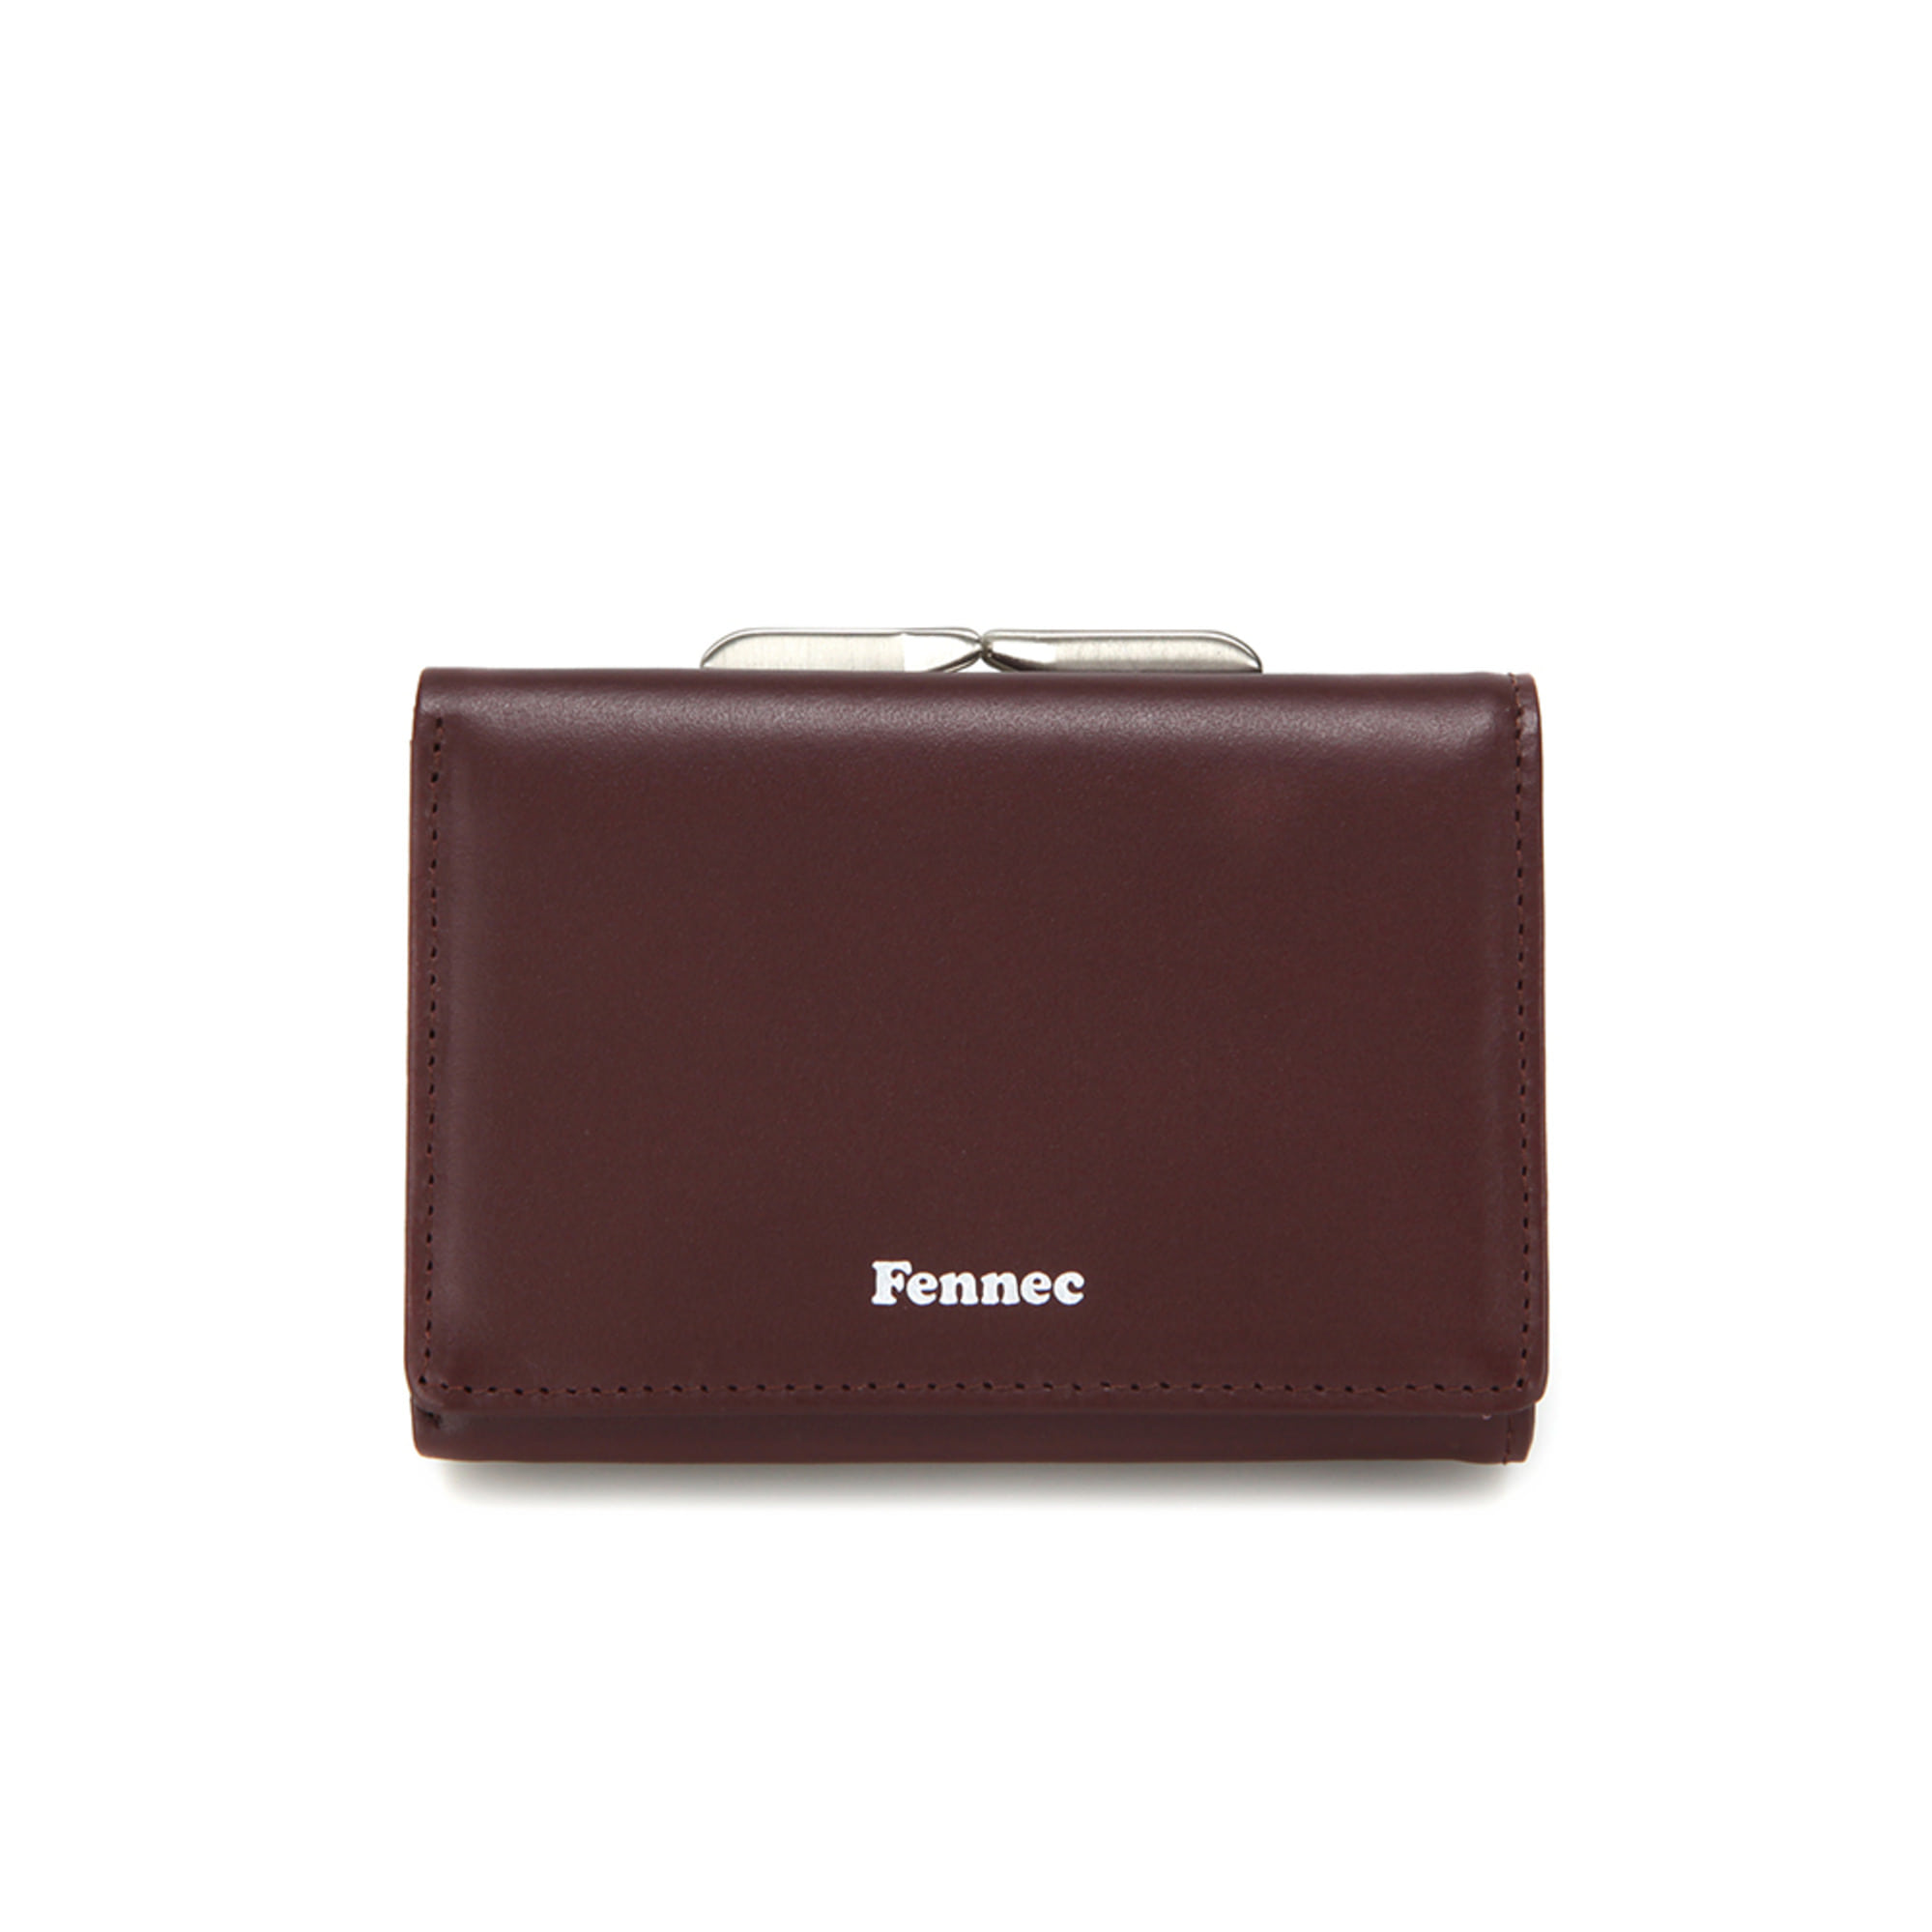 FRAME WALLET - WINE